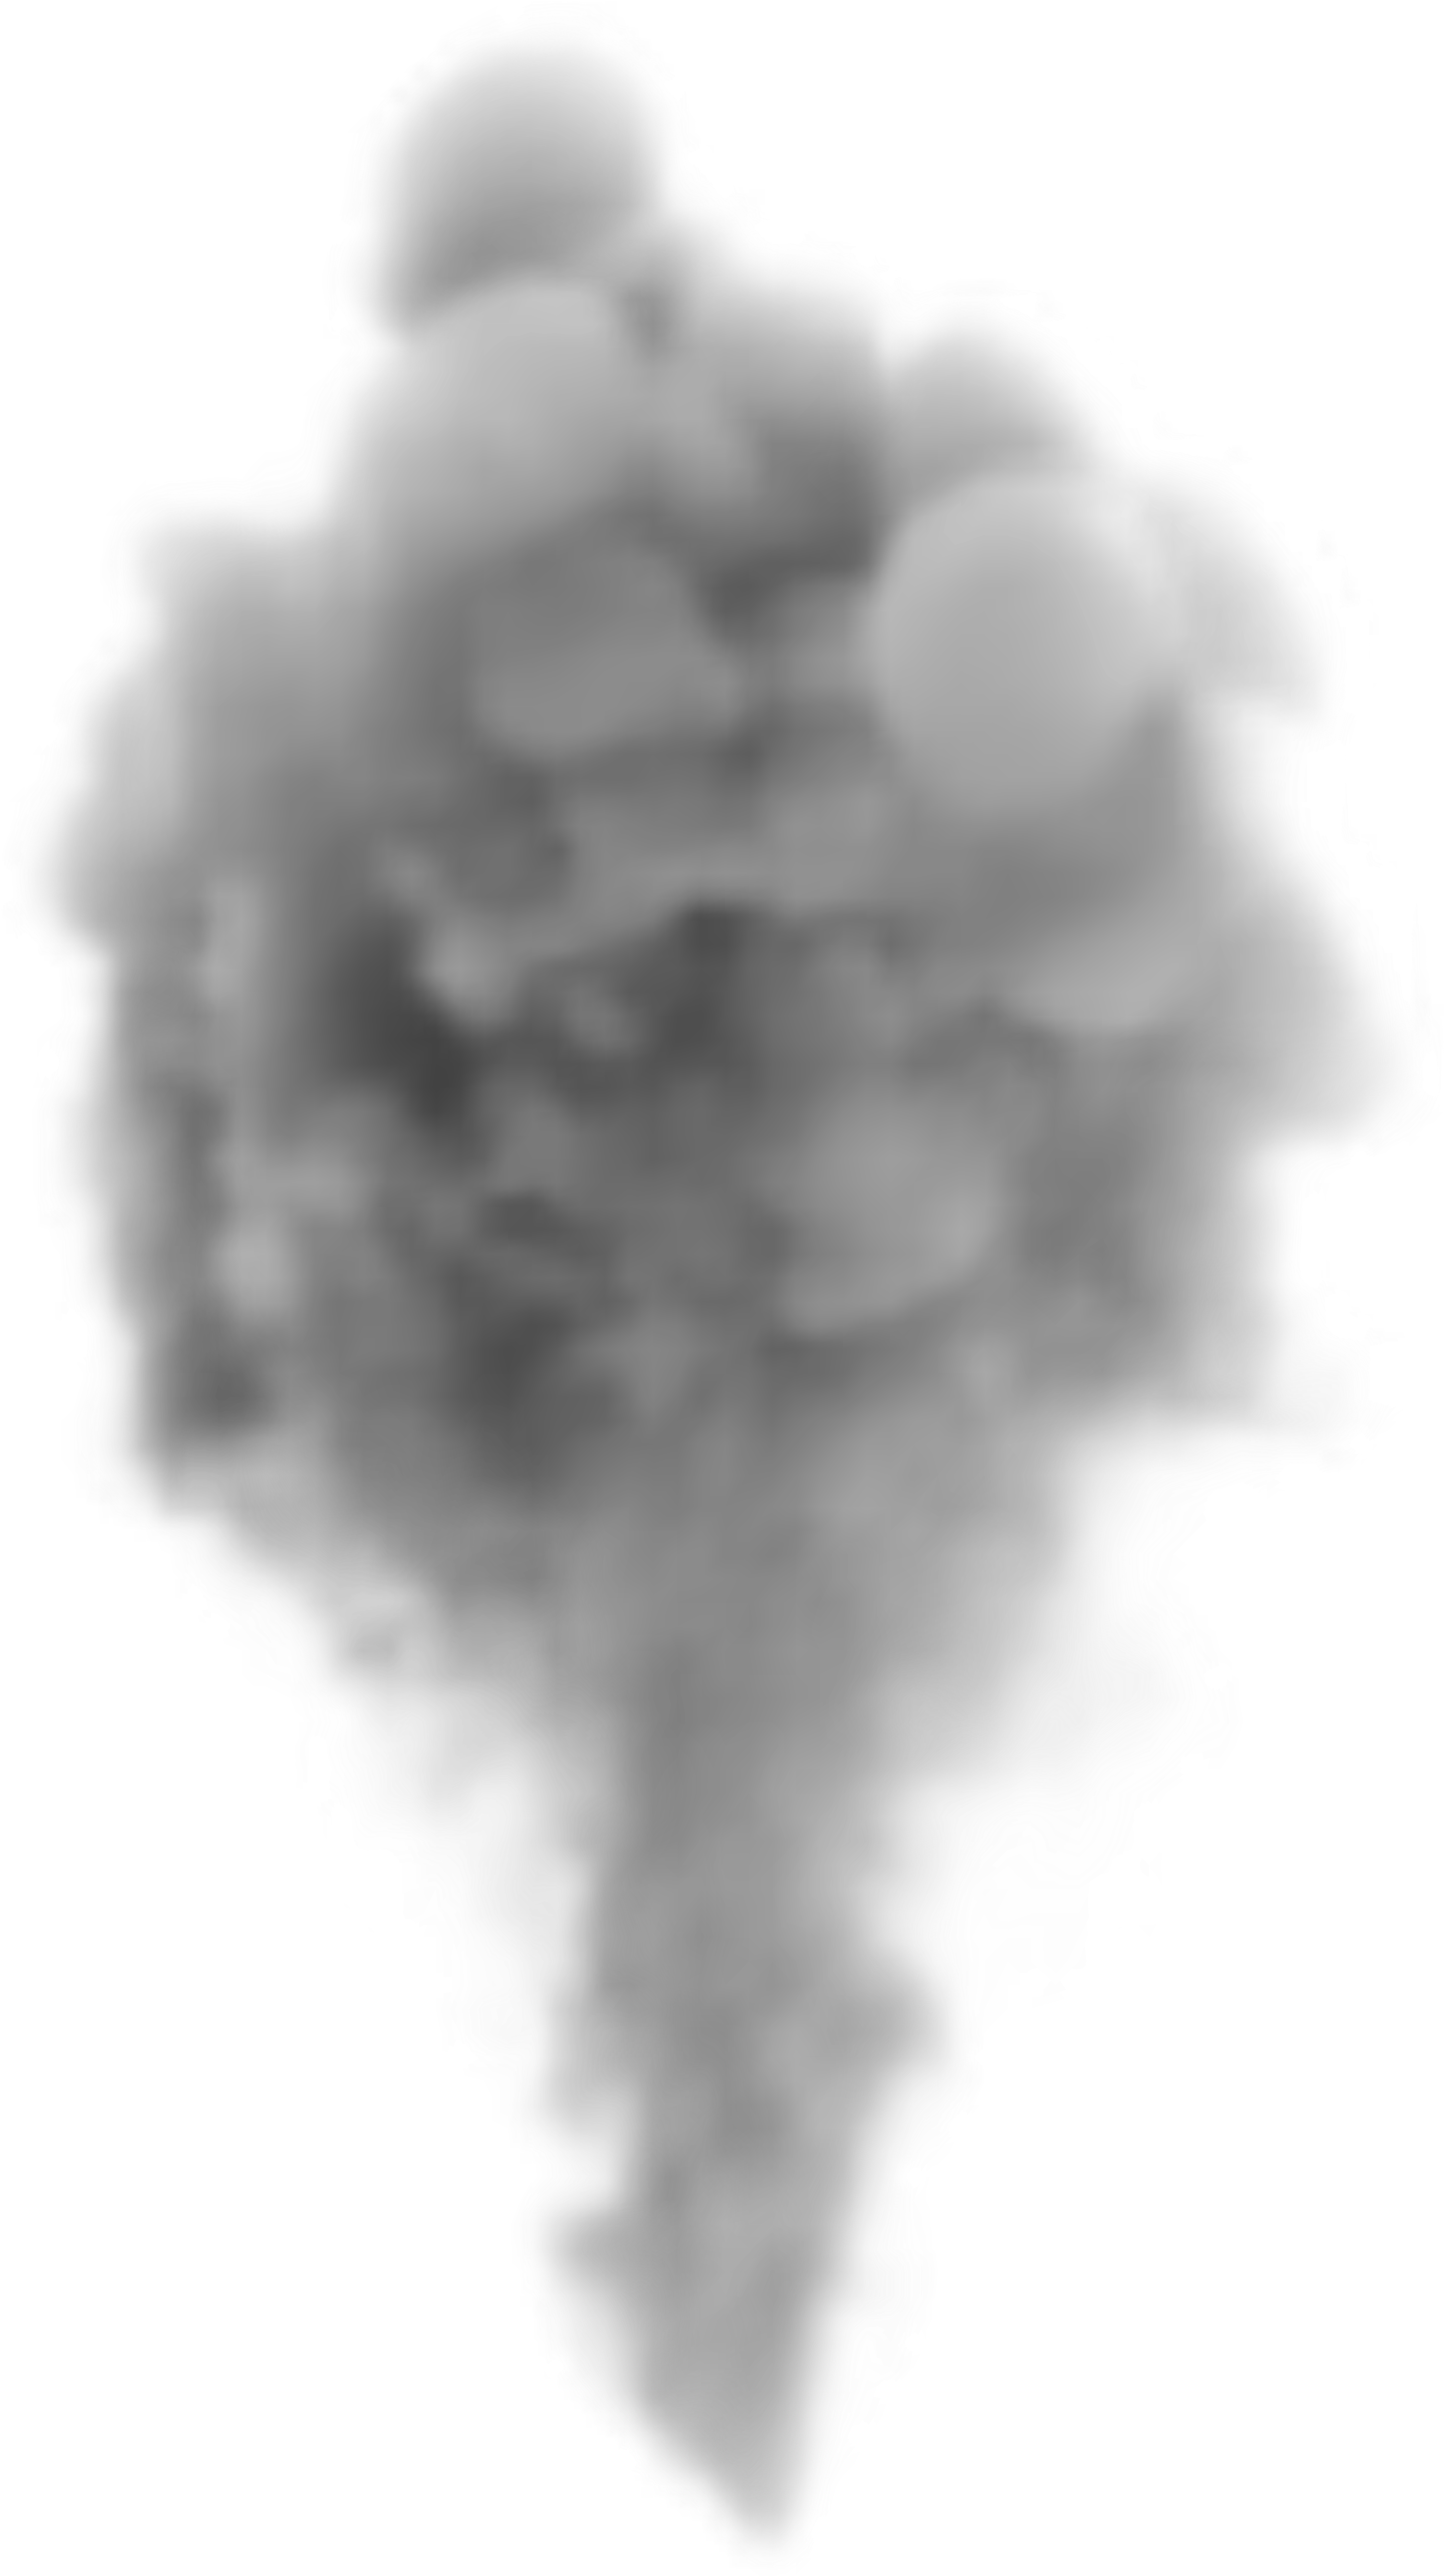 Smoke clipart transparent background smoke. Download png image with